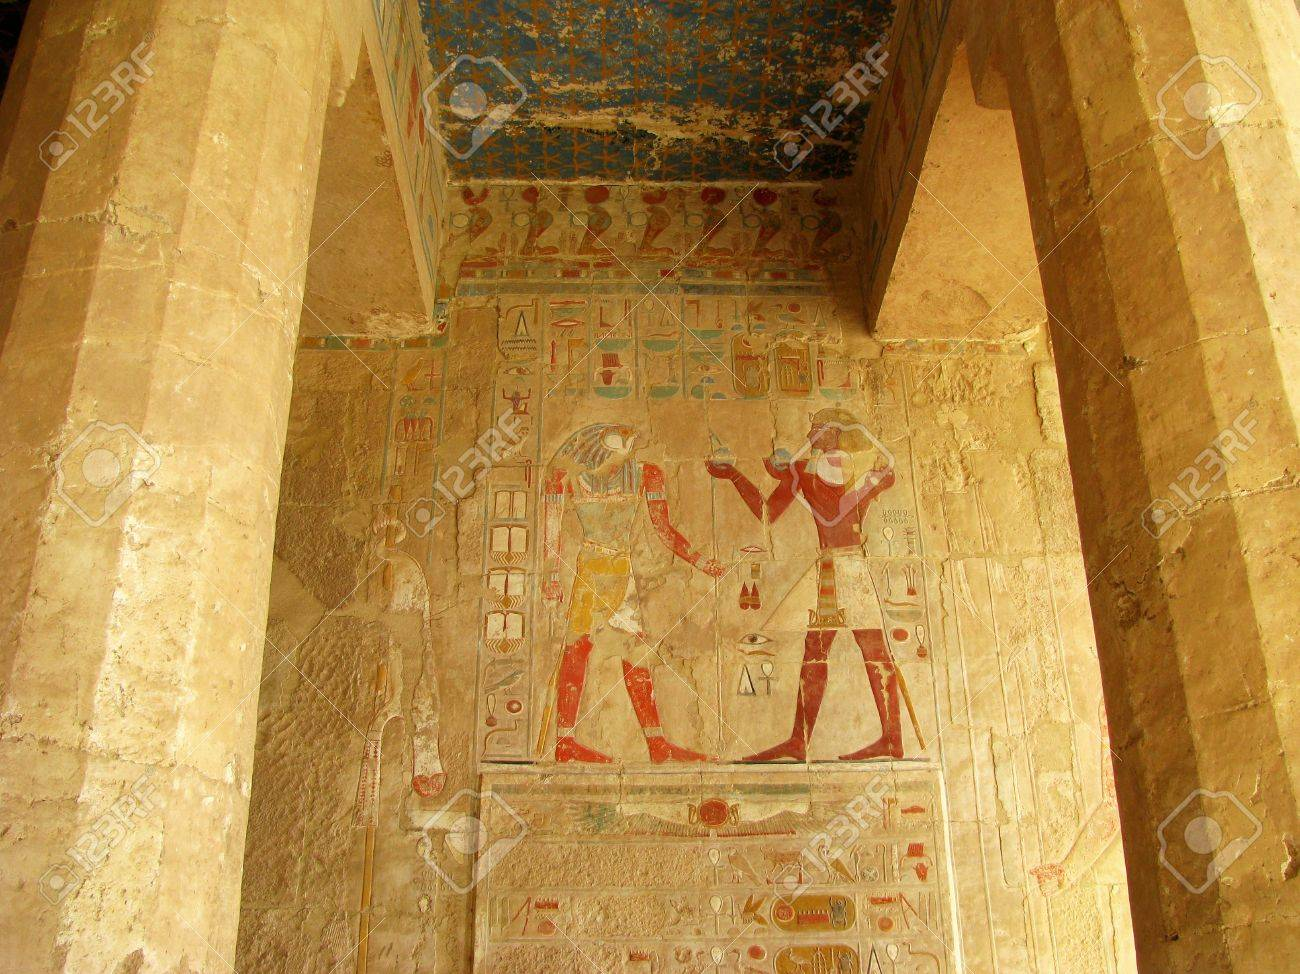 Polychromed carvings of the pharaoh and god horus at the awesome